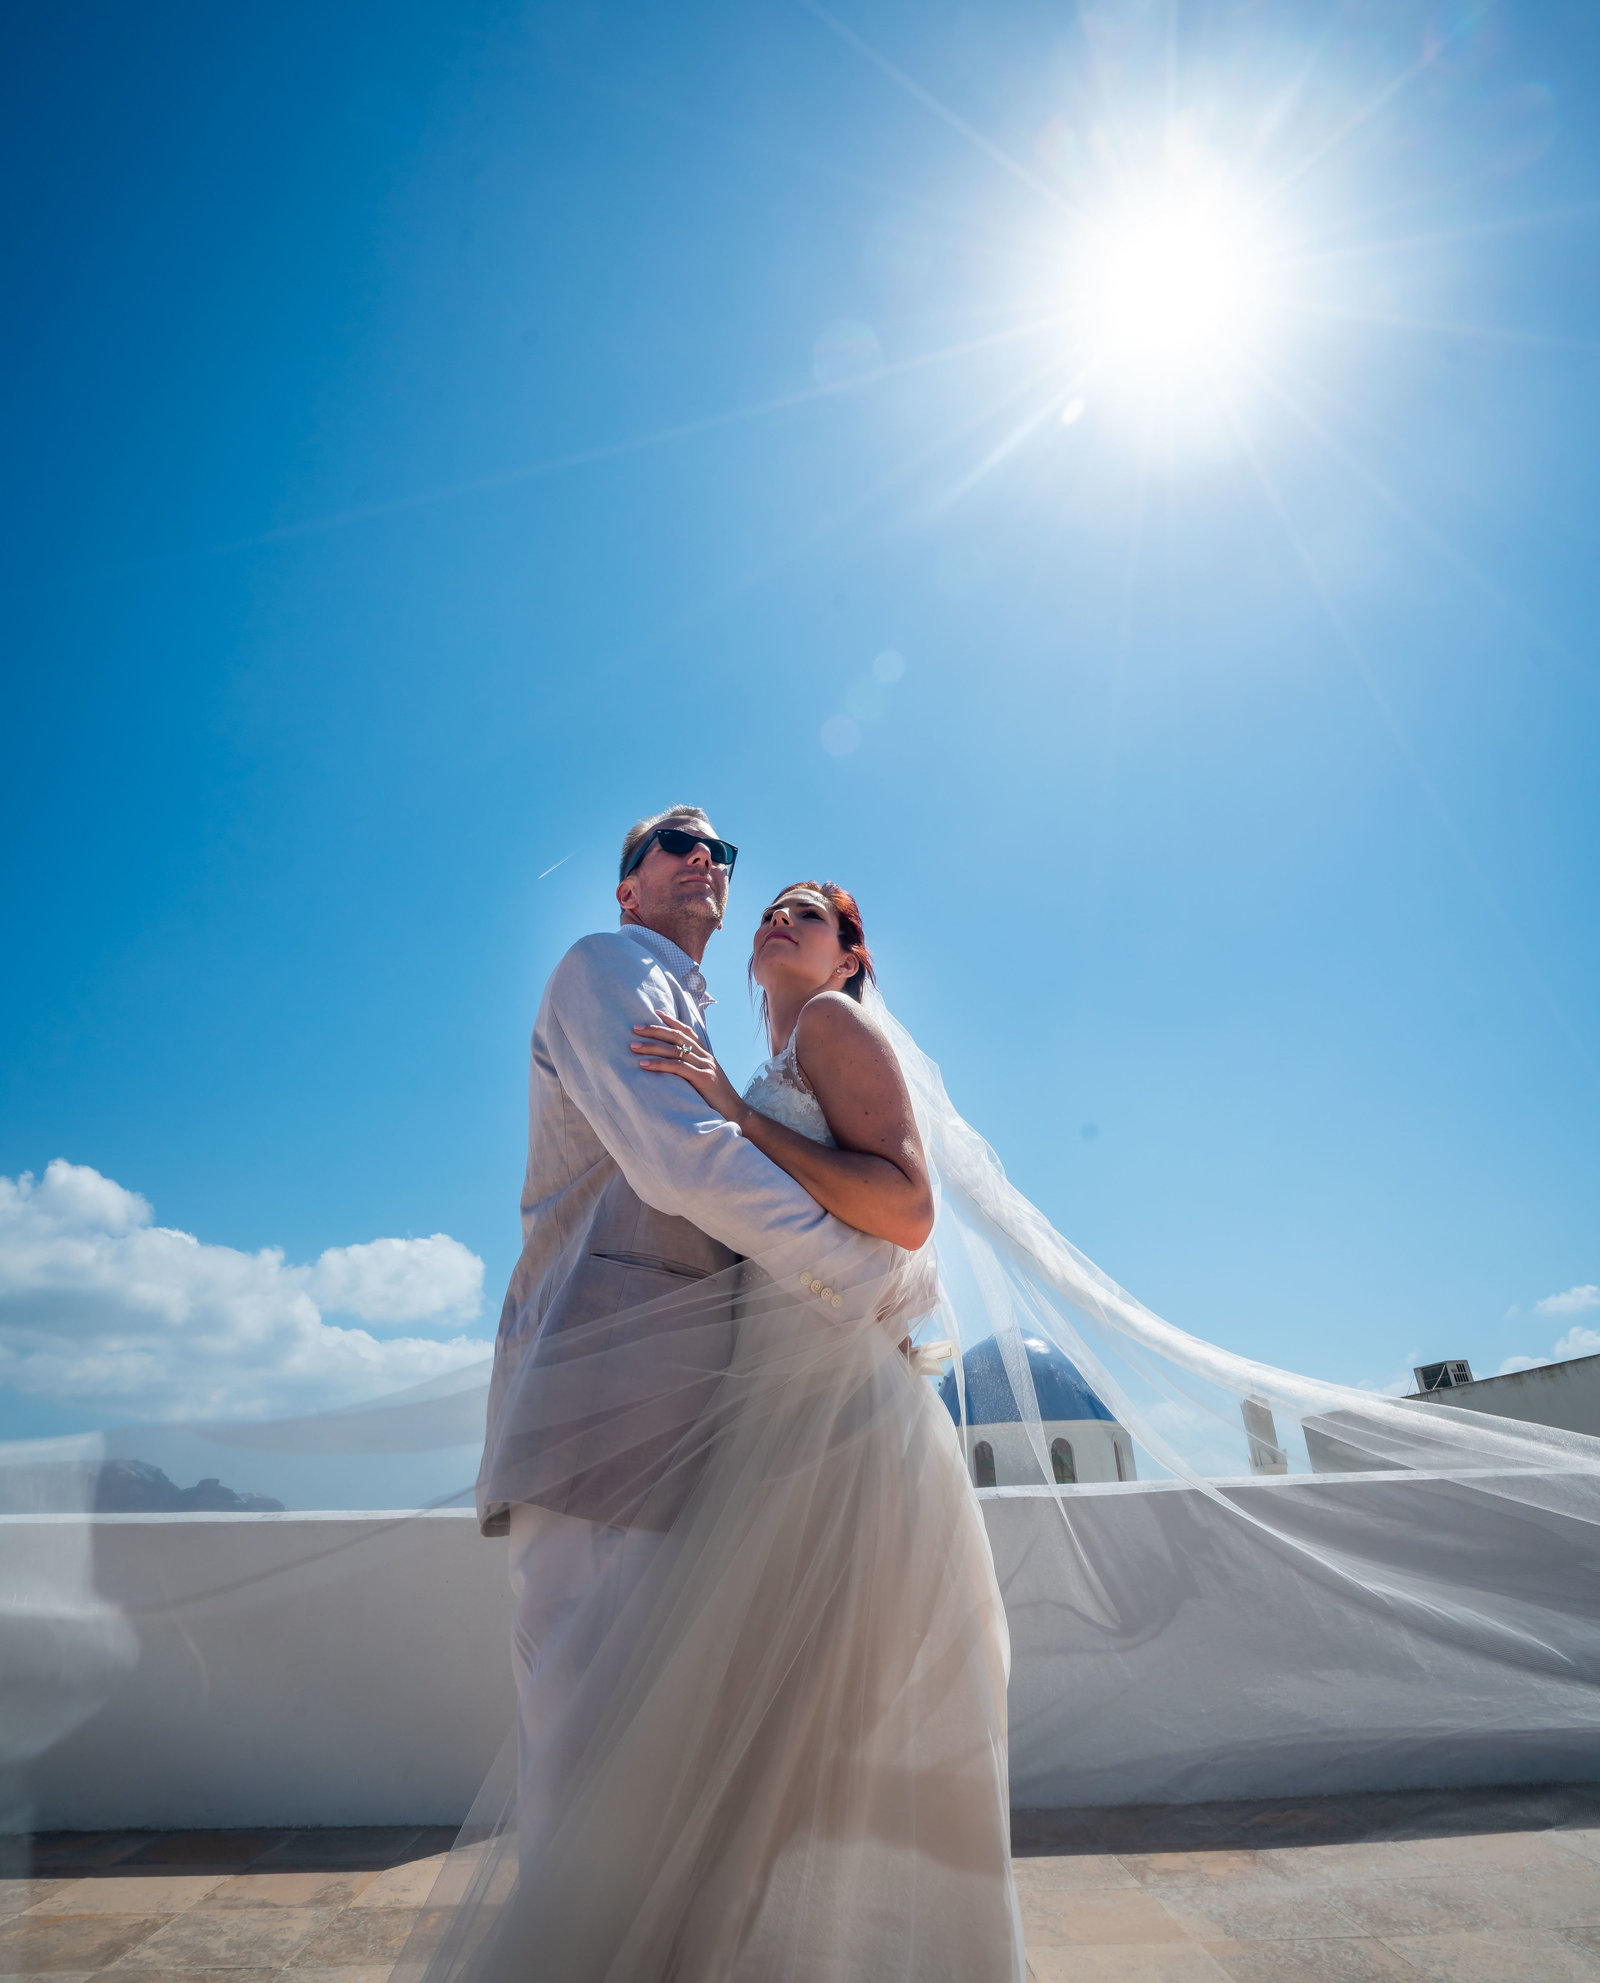 Santorni-greece-athens-wedding-405-brides-photographer